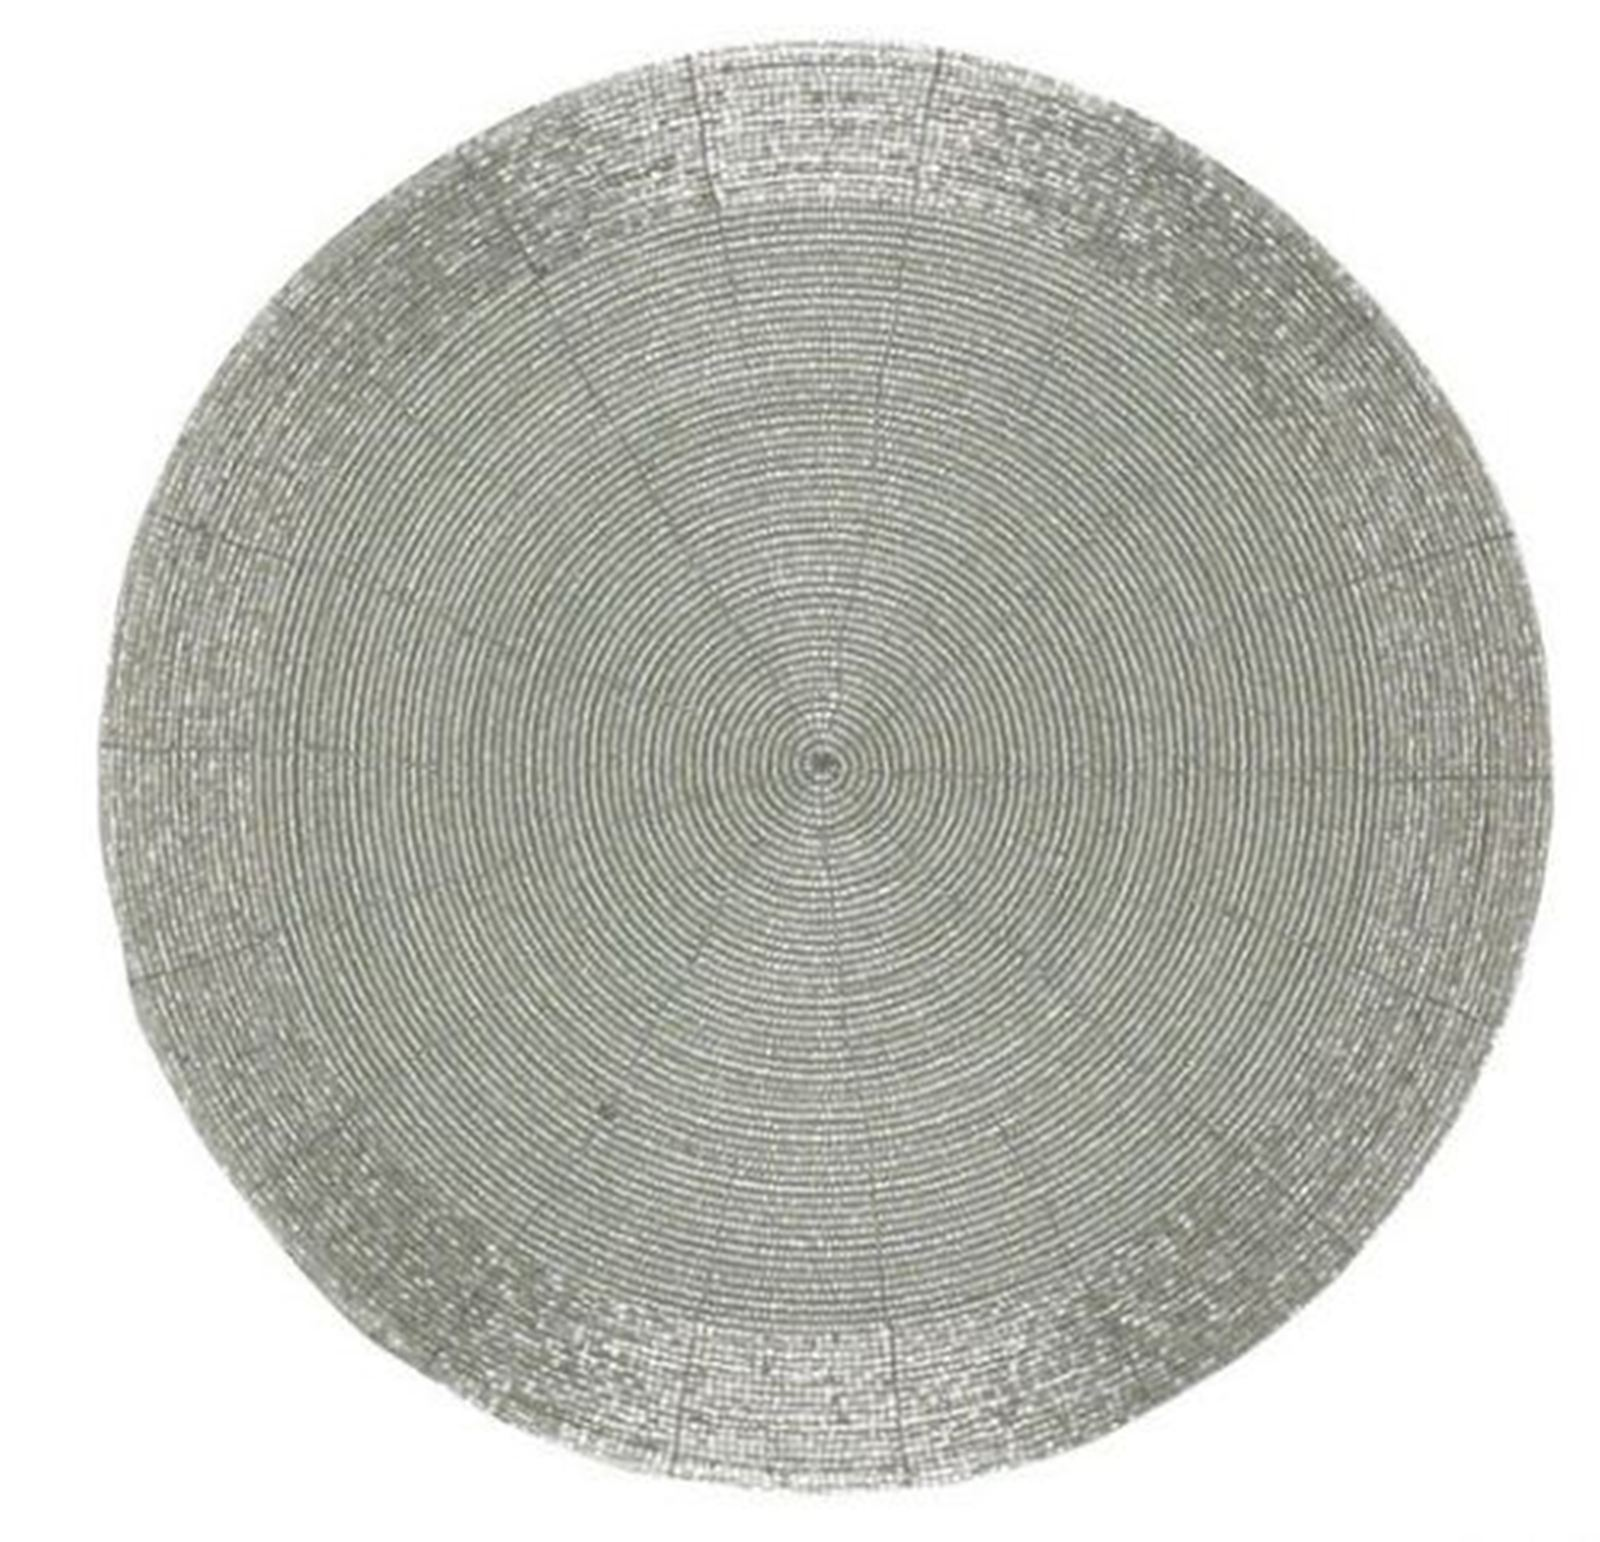 silver beaded 13 inch placemats